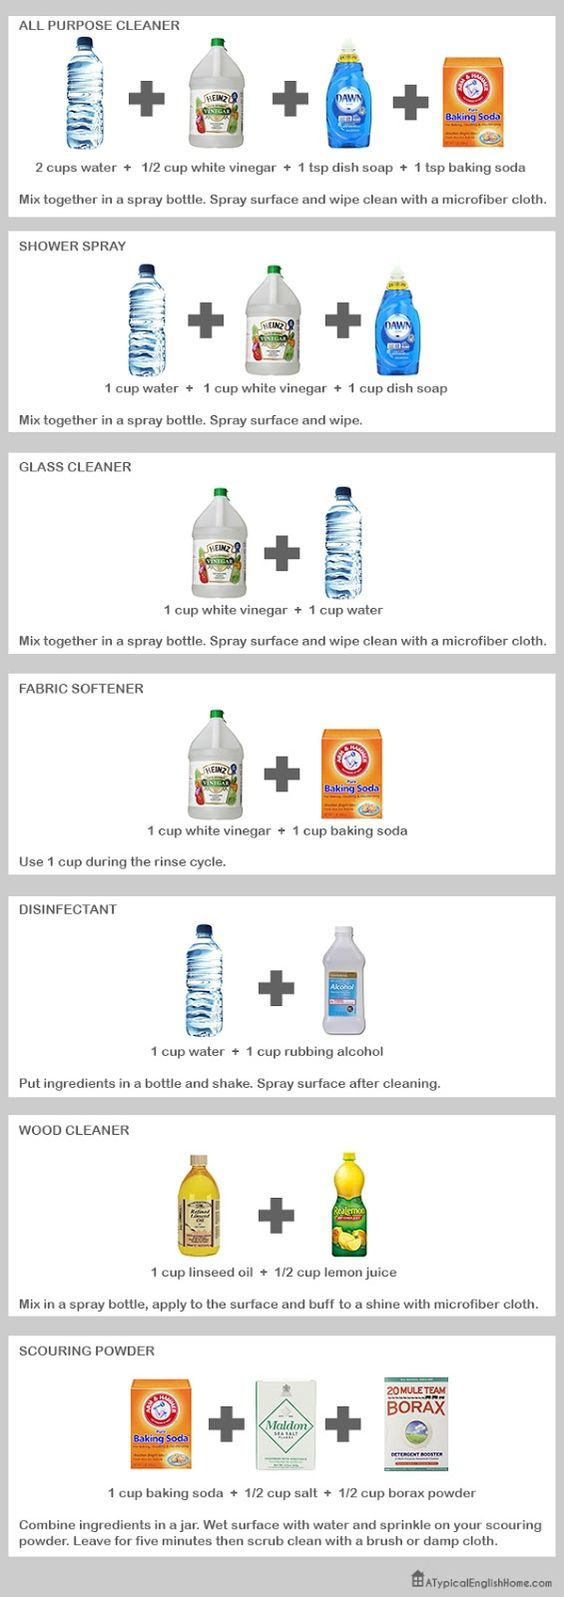 NaturalCleaningRecipes.jpg (565×1600)